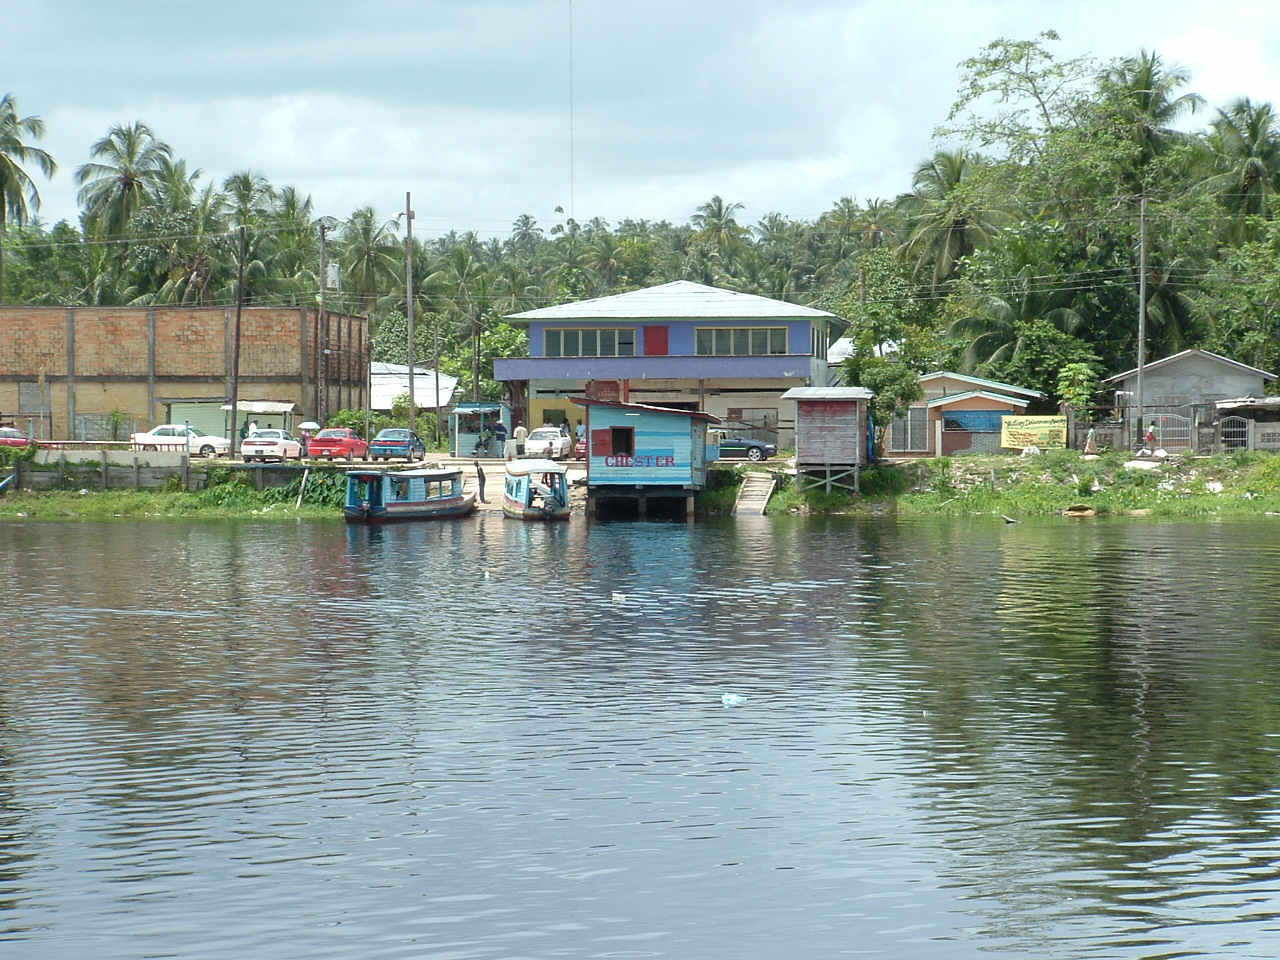 Ferry at Wizmar,  Demerara River, 2009, Linden, Guyana